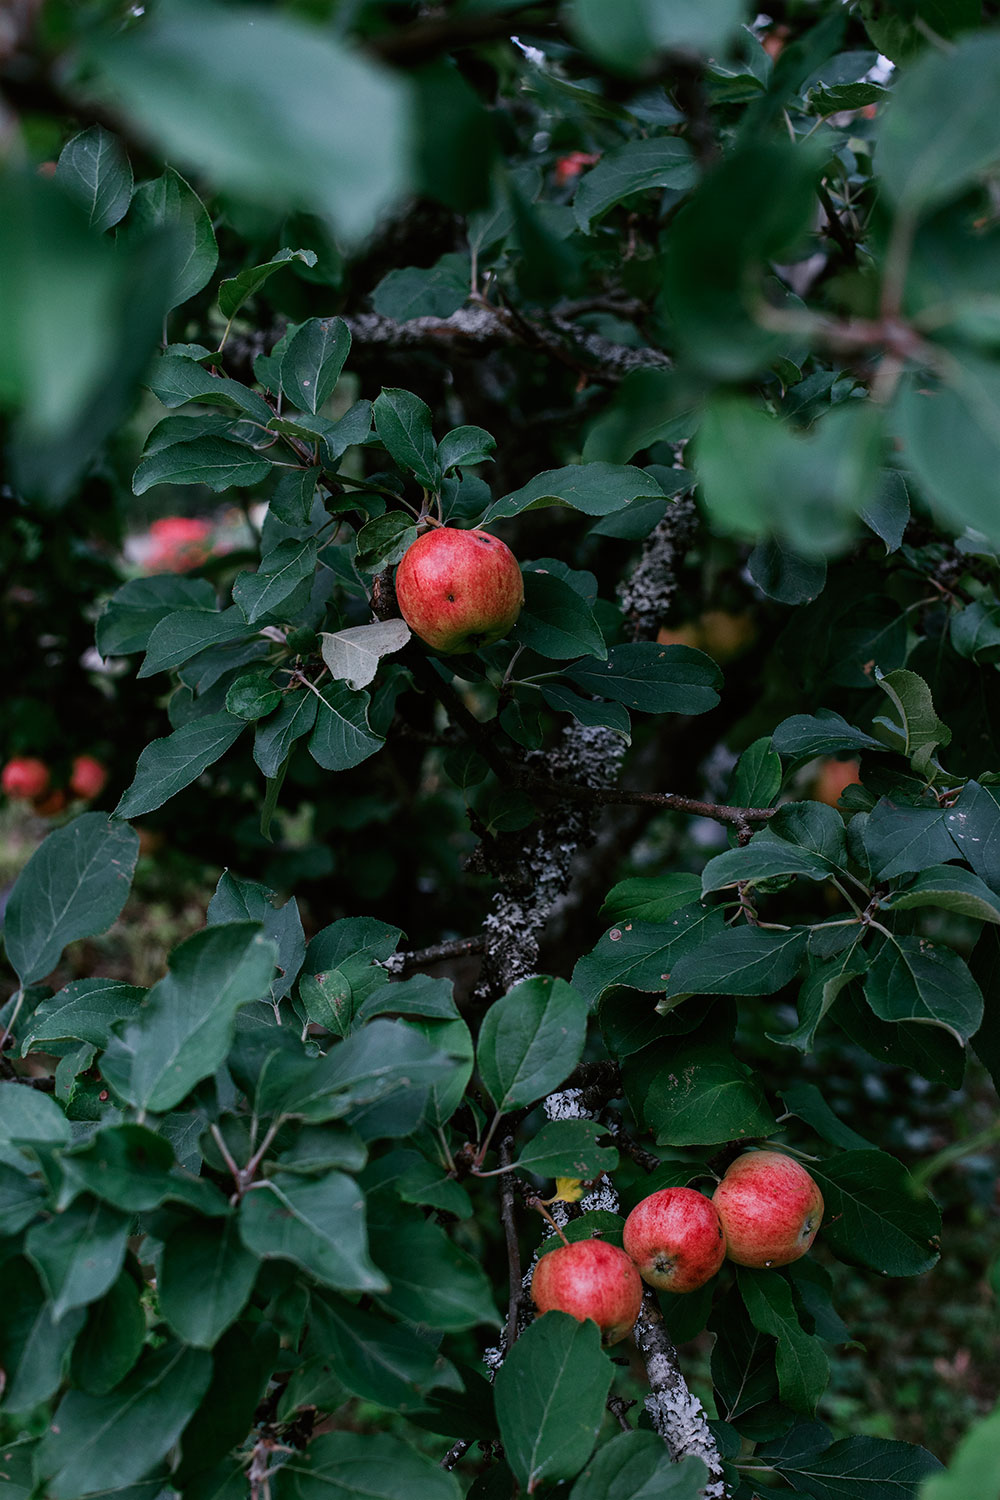 Apple Tree with ripe red apples